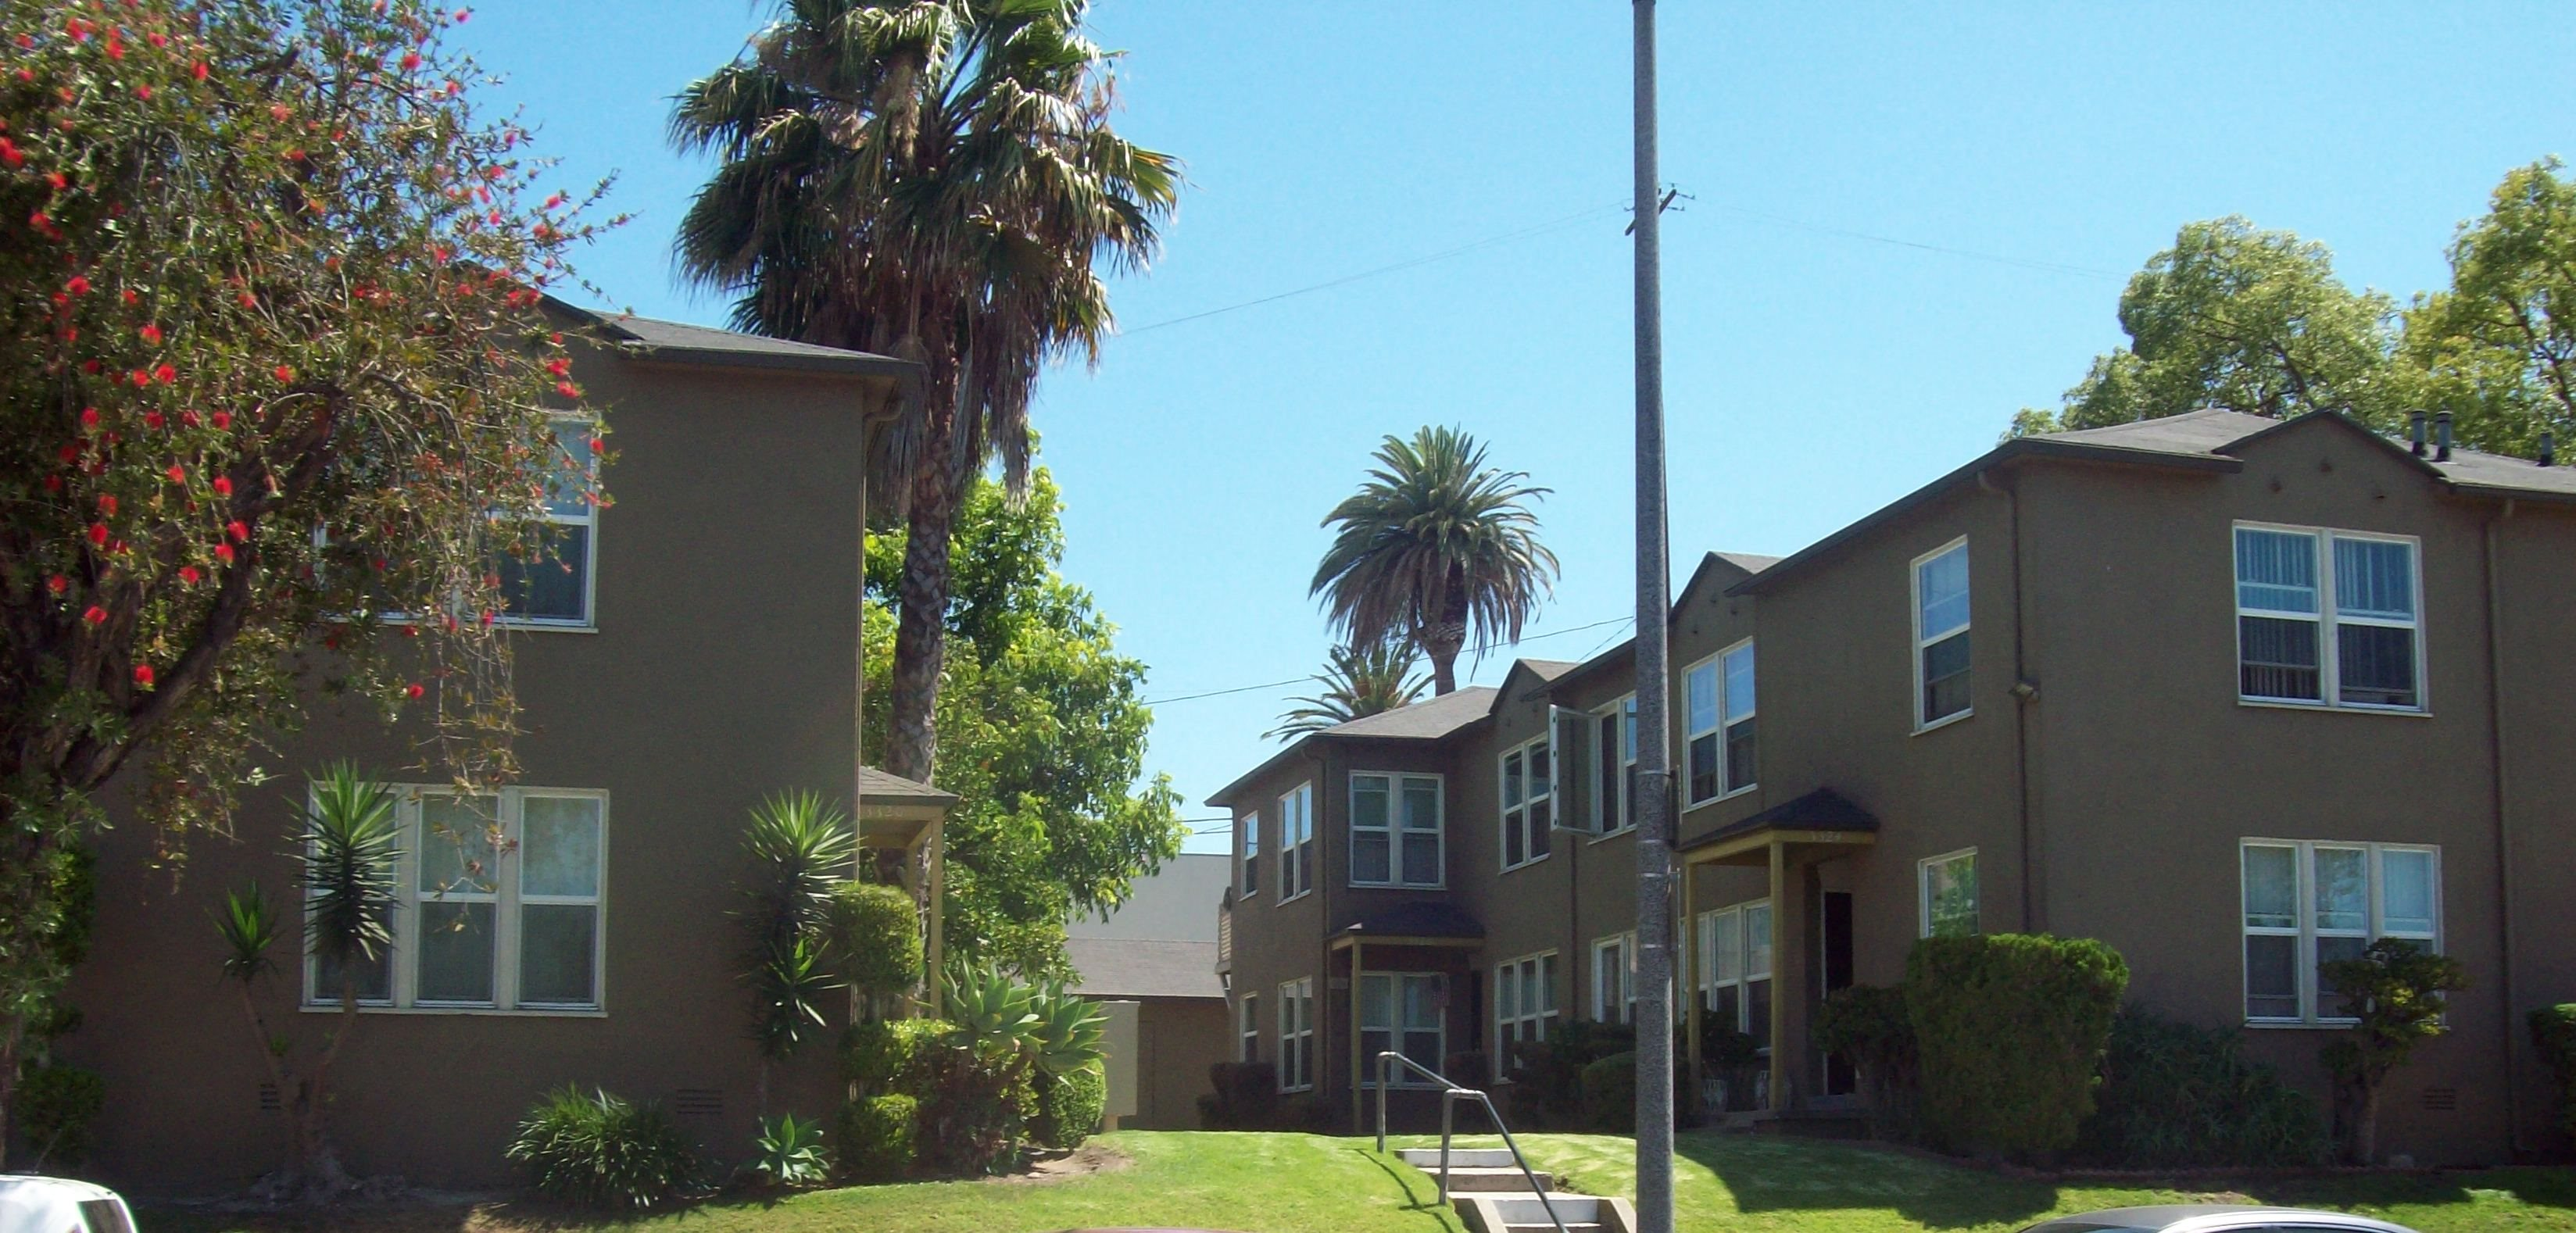 Crenshaw Terrace Apartments In Los Angeles Ca